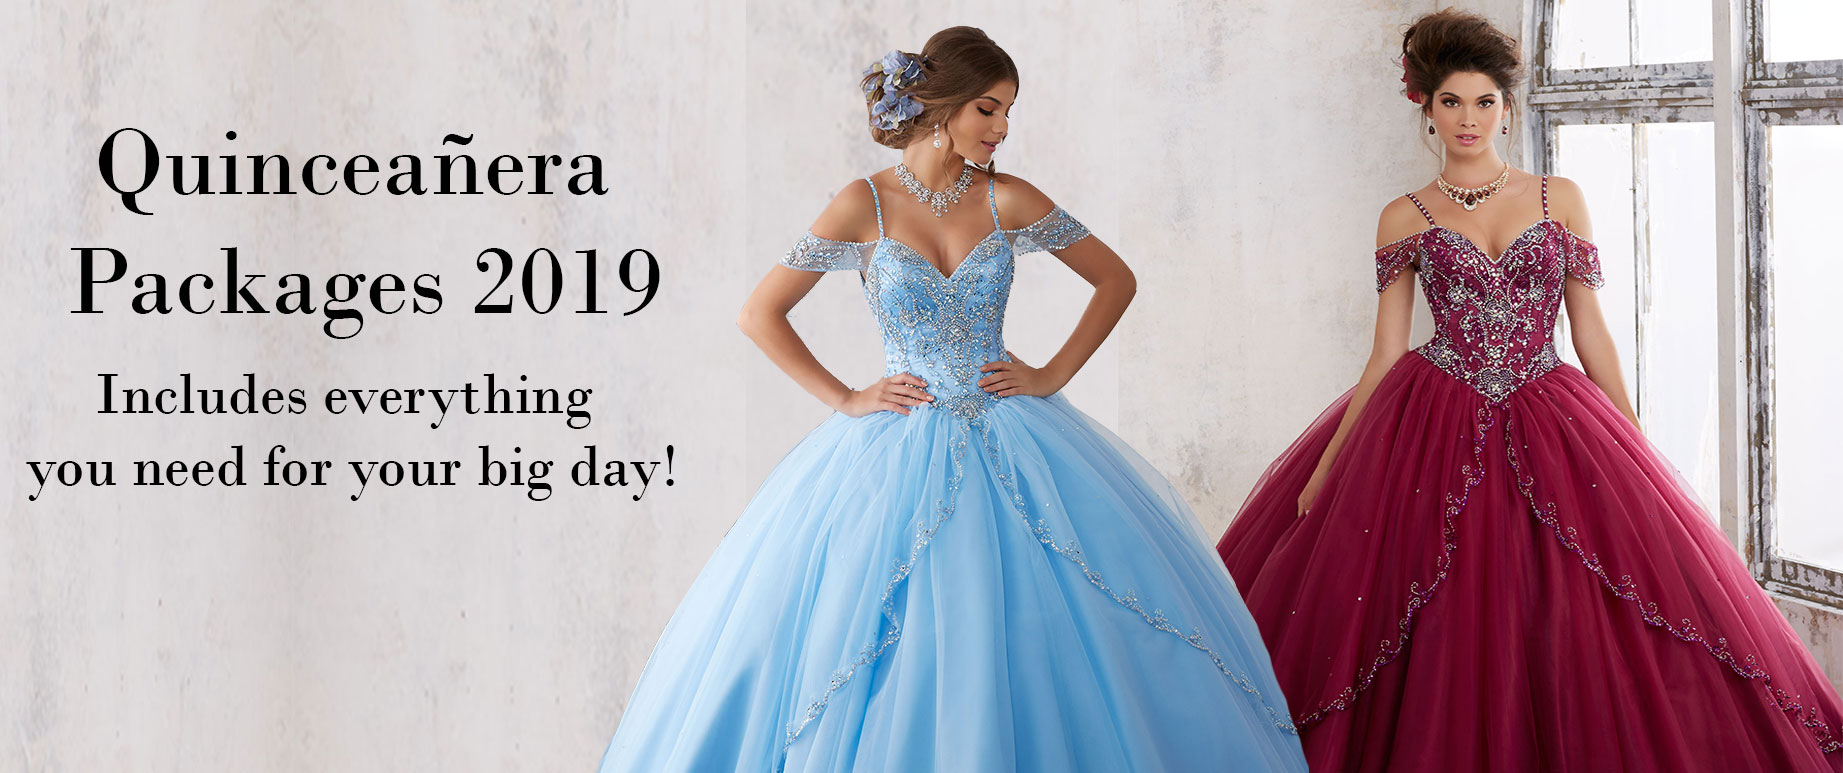 1c25e13c1e7 Quinceanera Dress Shops In El Paso Tx - Gomes Weine AG